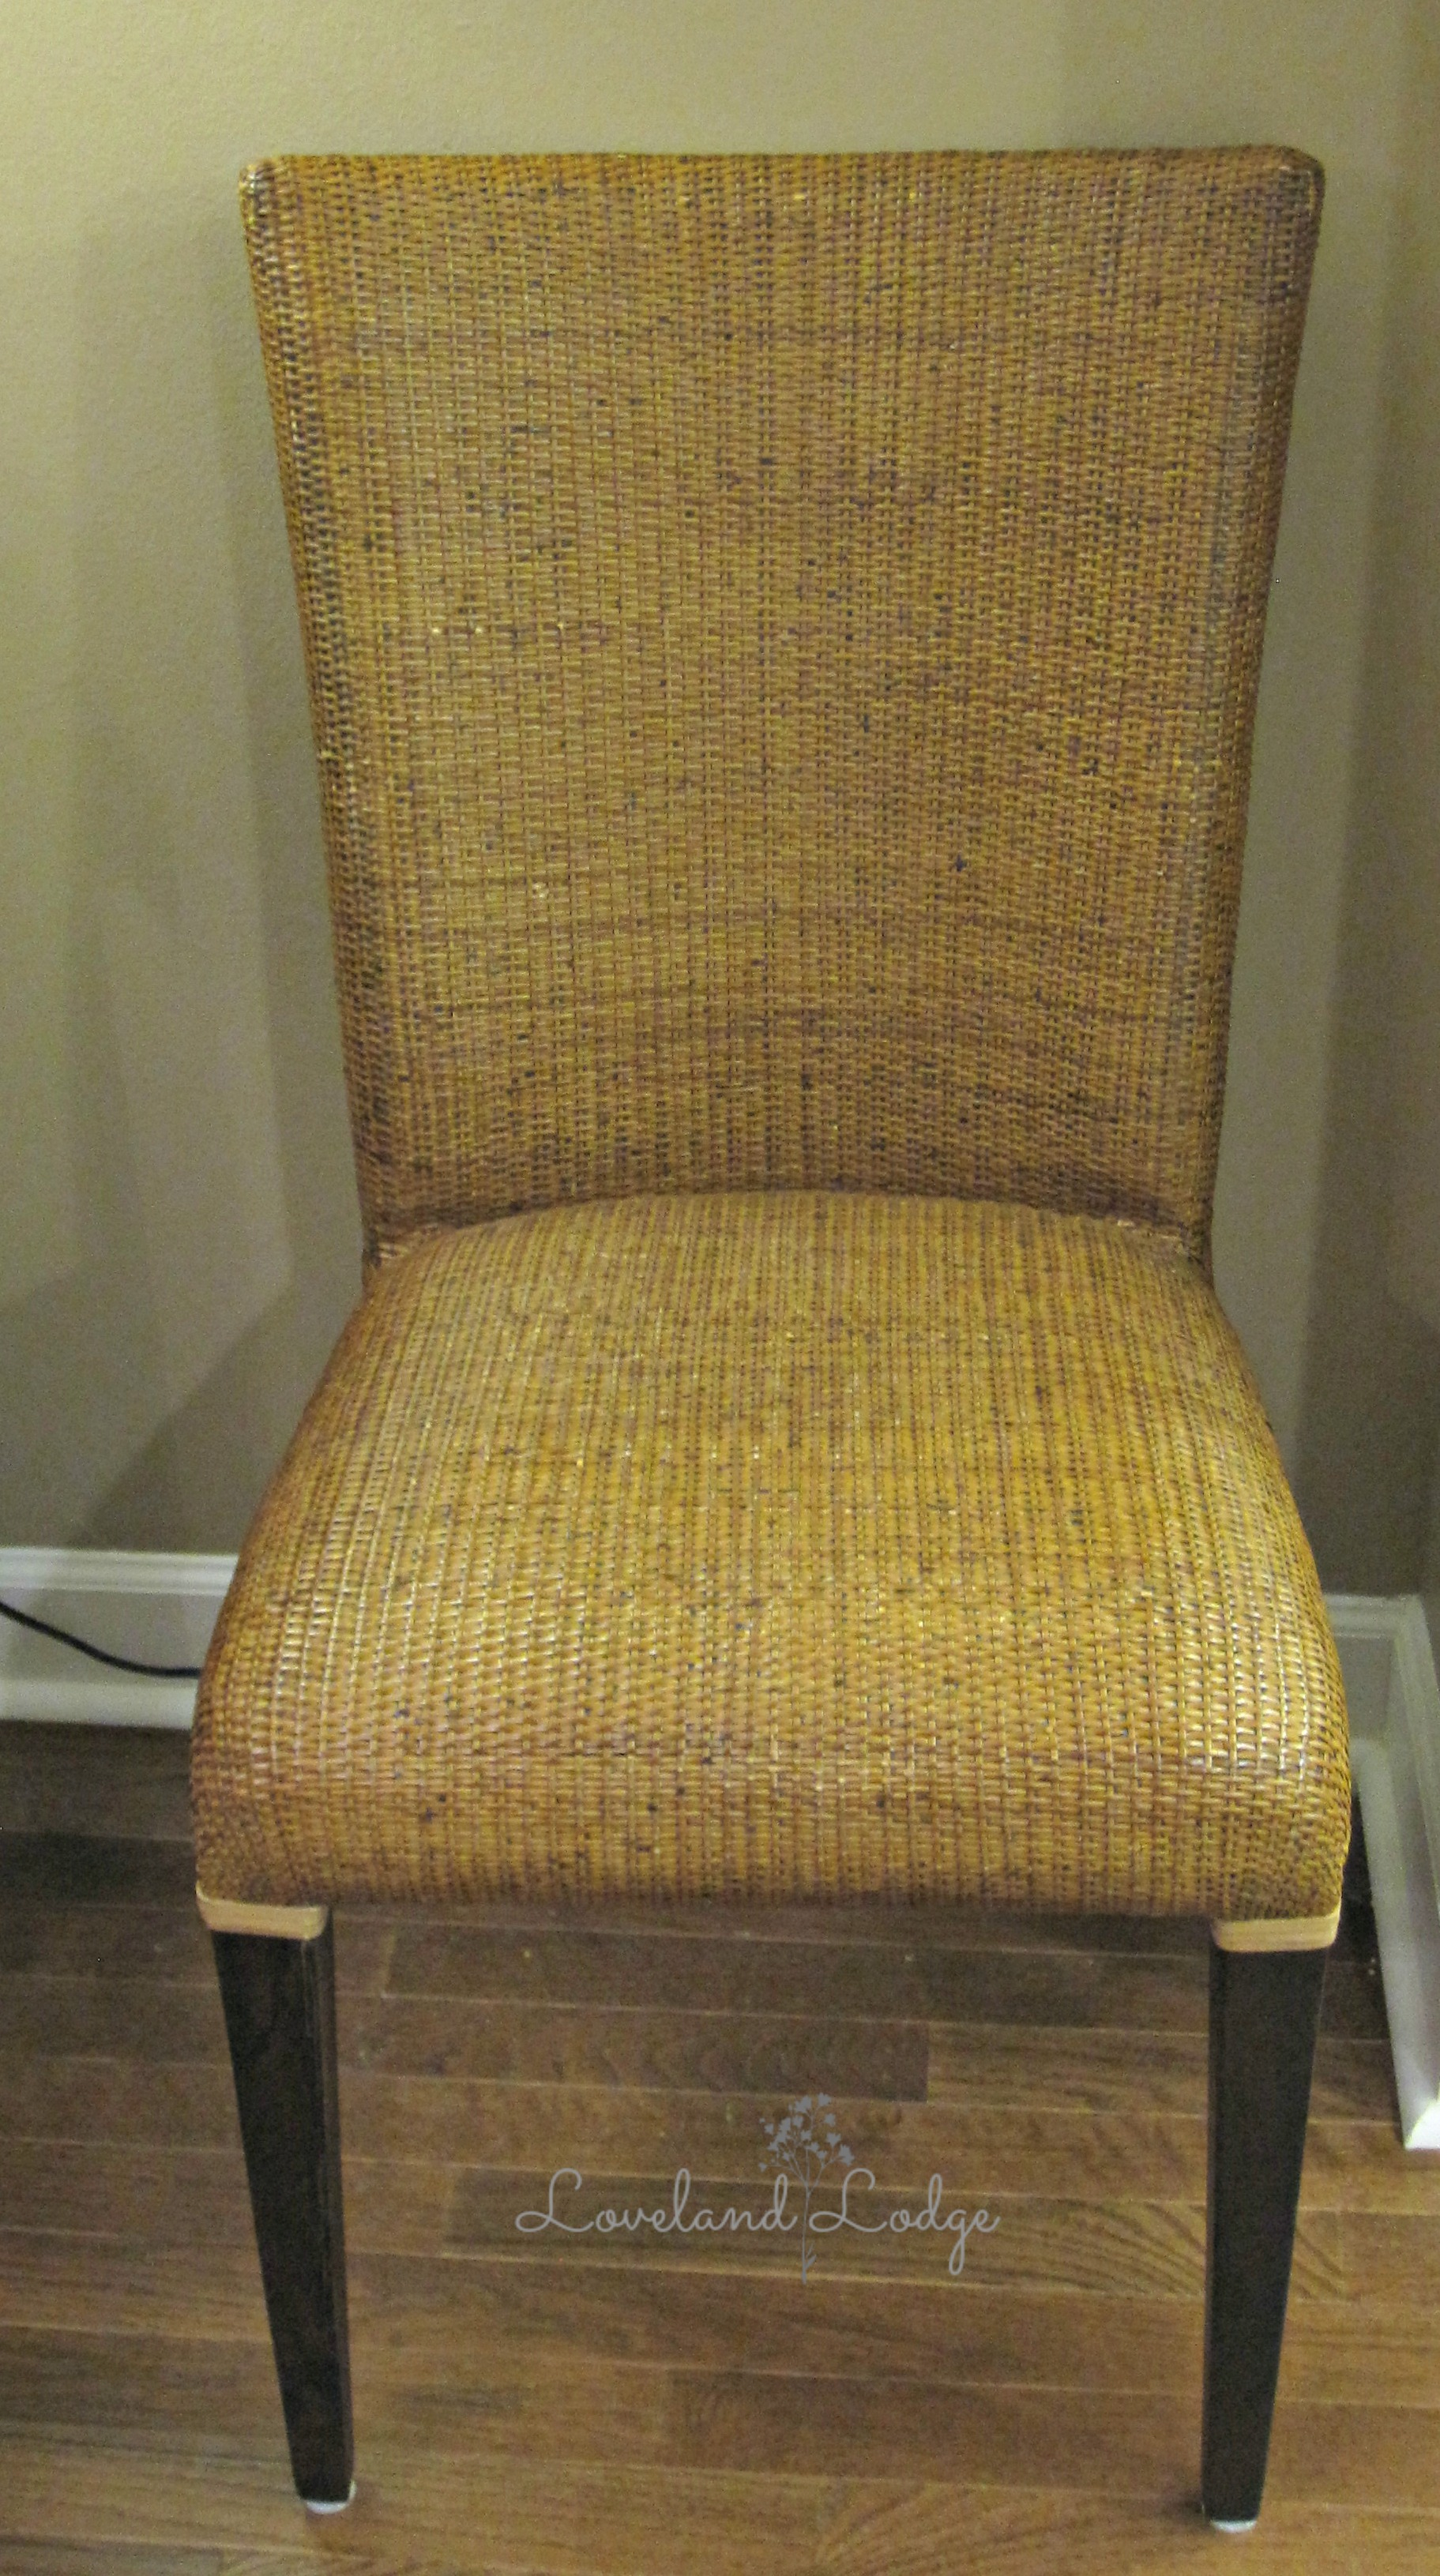 comfortable wicker chairs parsons chair seat covers chalk paint makeover loveland lodge